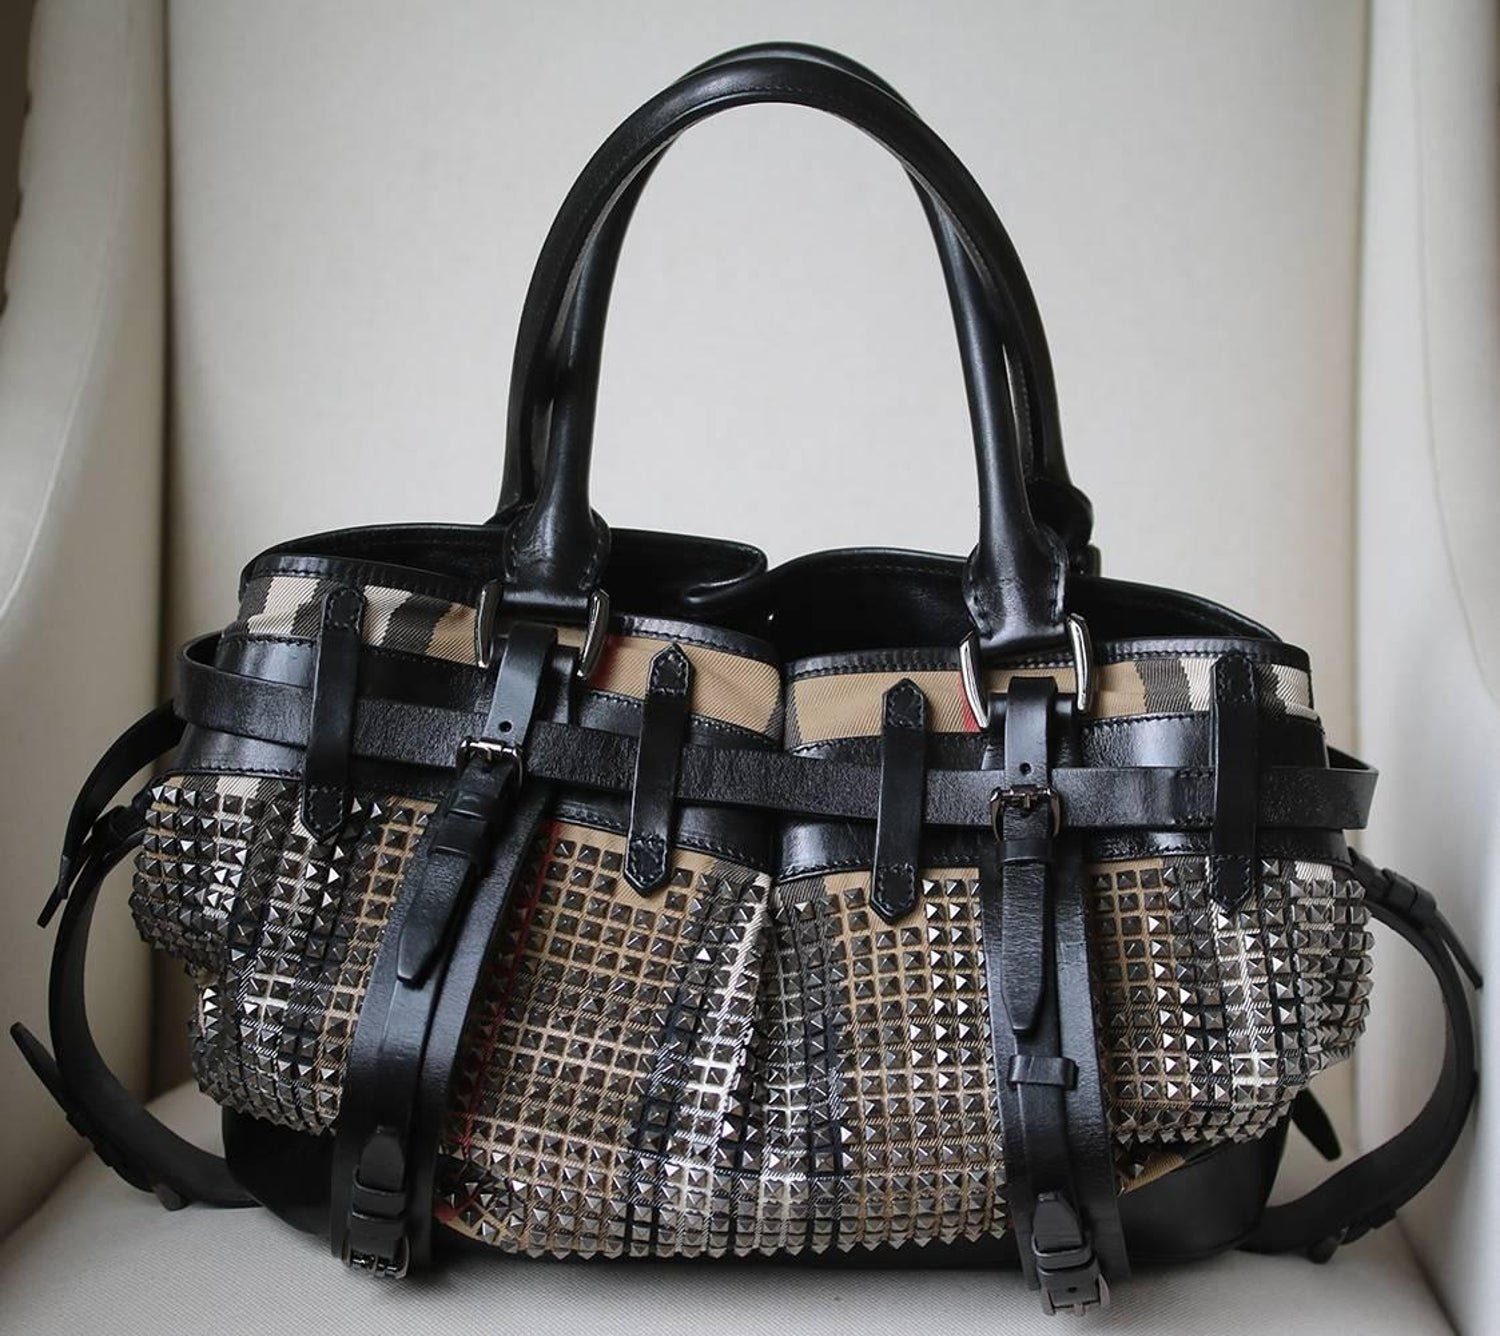 f4a9a621e478 Burberry Studded Classic Check Bag For Sale at 1stdibs